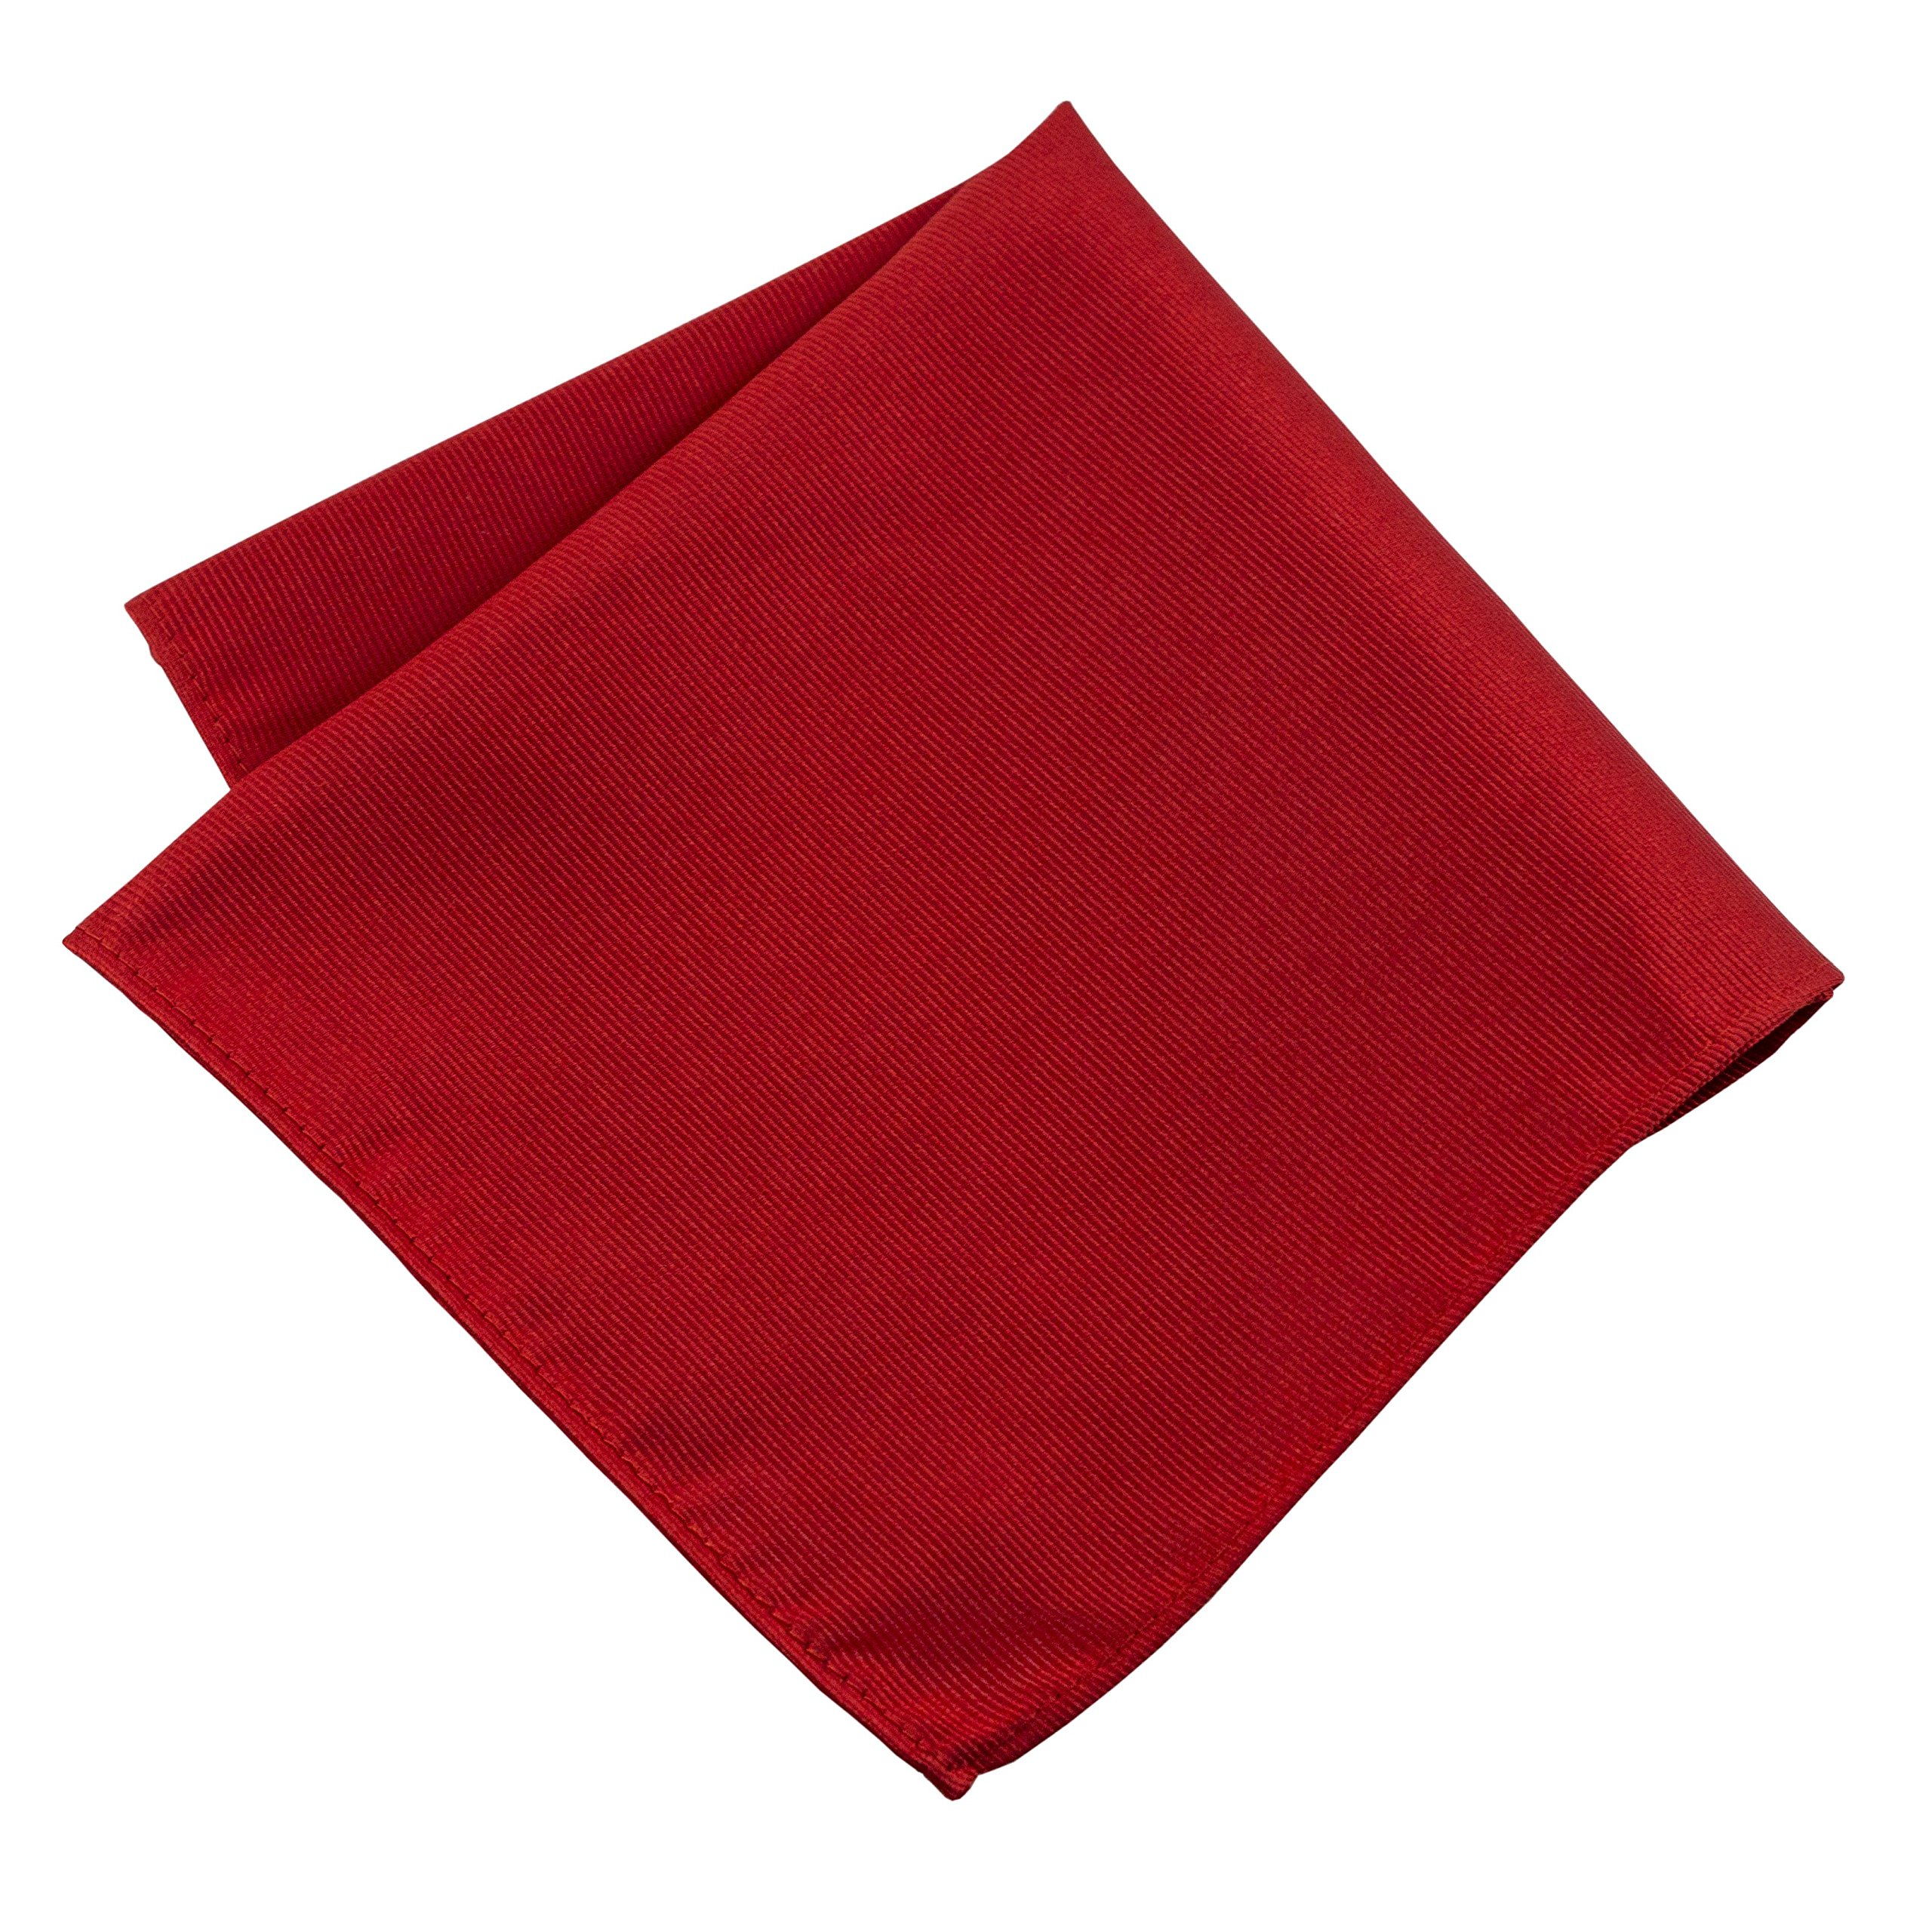 100% Silk Woven Red Pocket Square Handkerchief by John William by John William Clothing (Image #1)